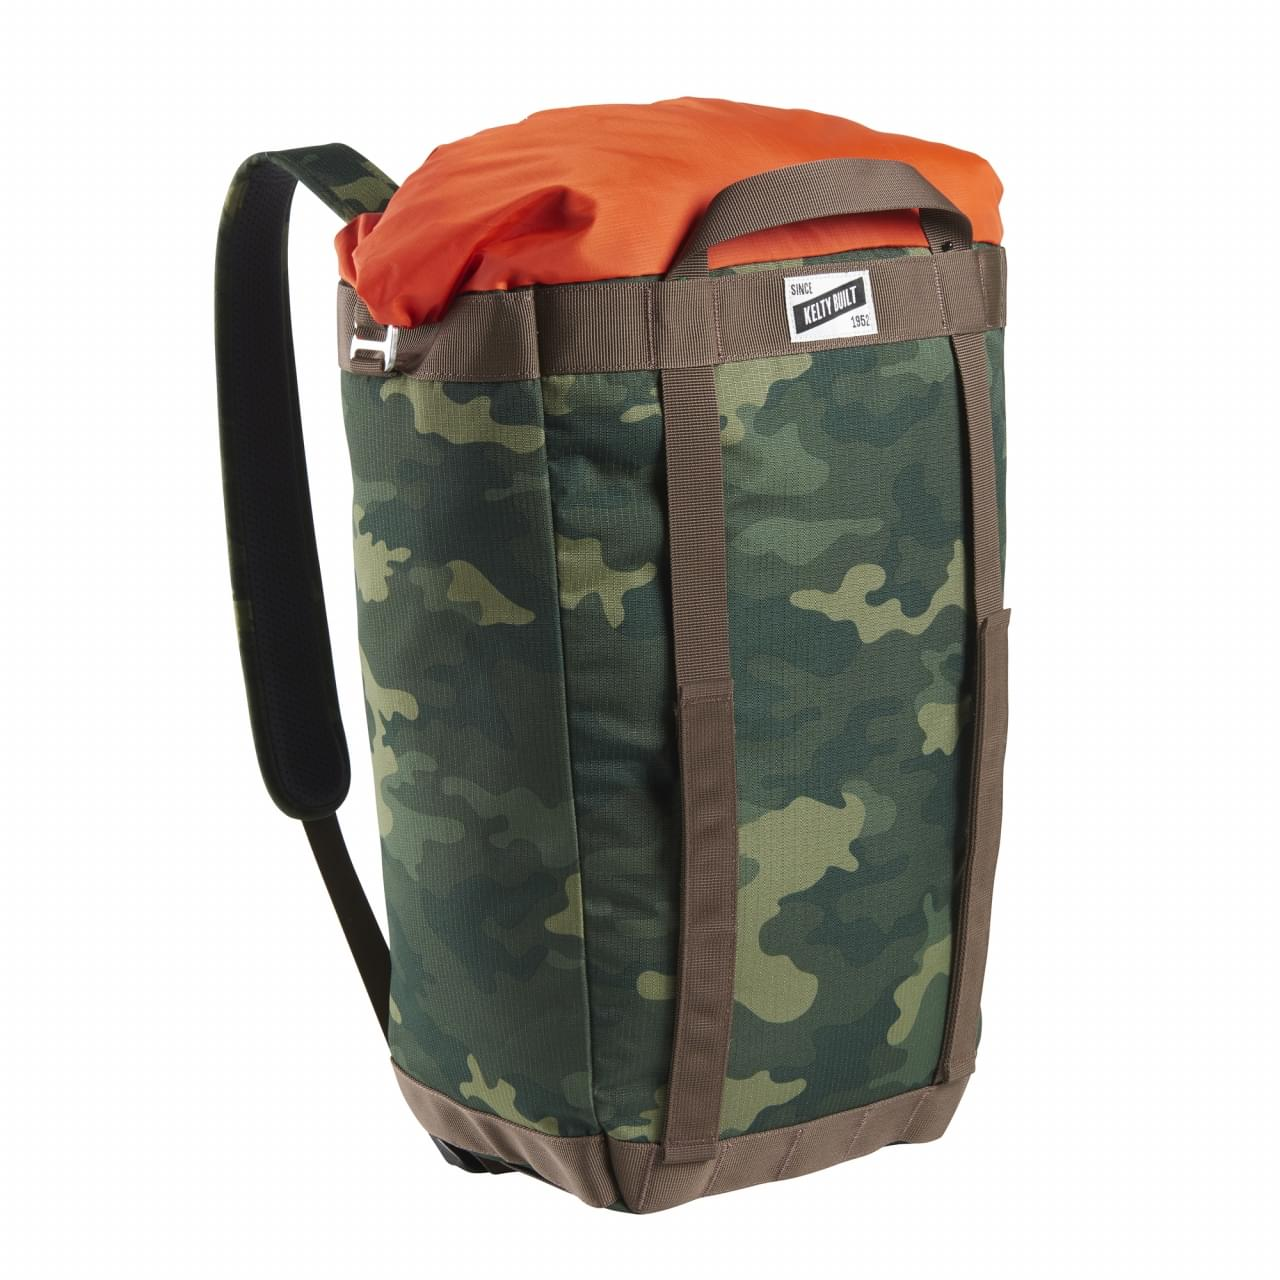 Kelty Hyphen Tote 30 Rugzak - Camouflage